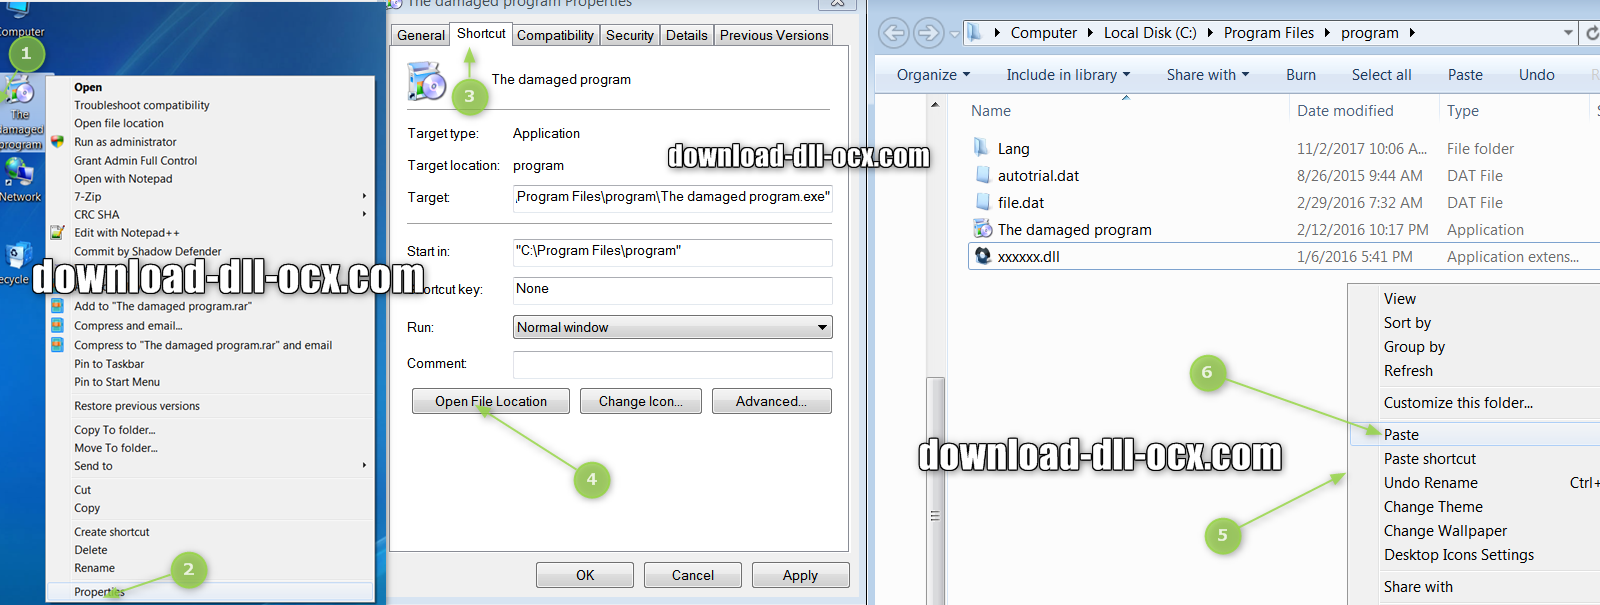 how to install Comres.dll file? for fix missing